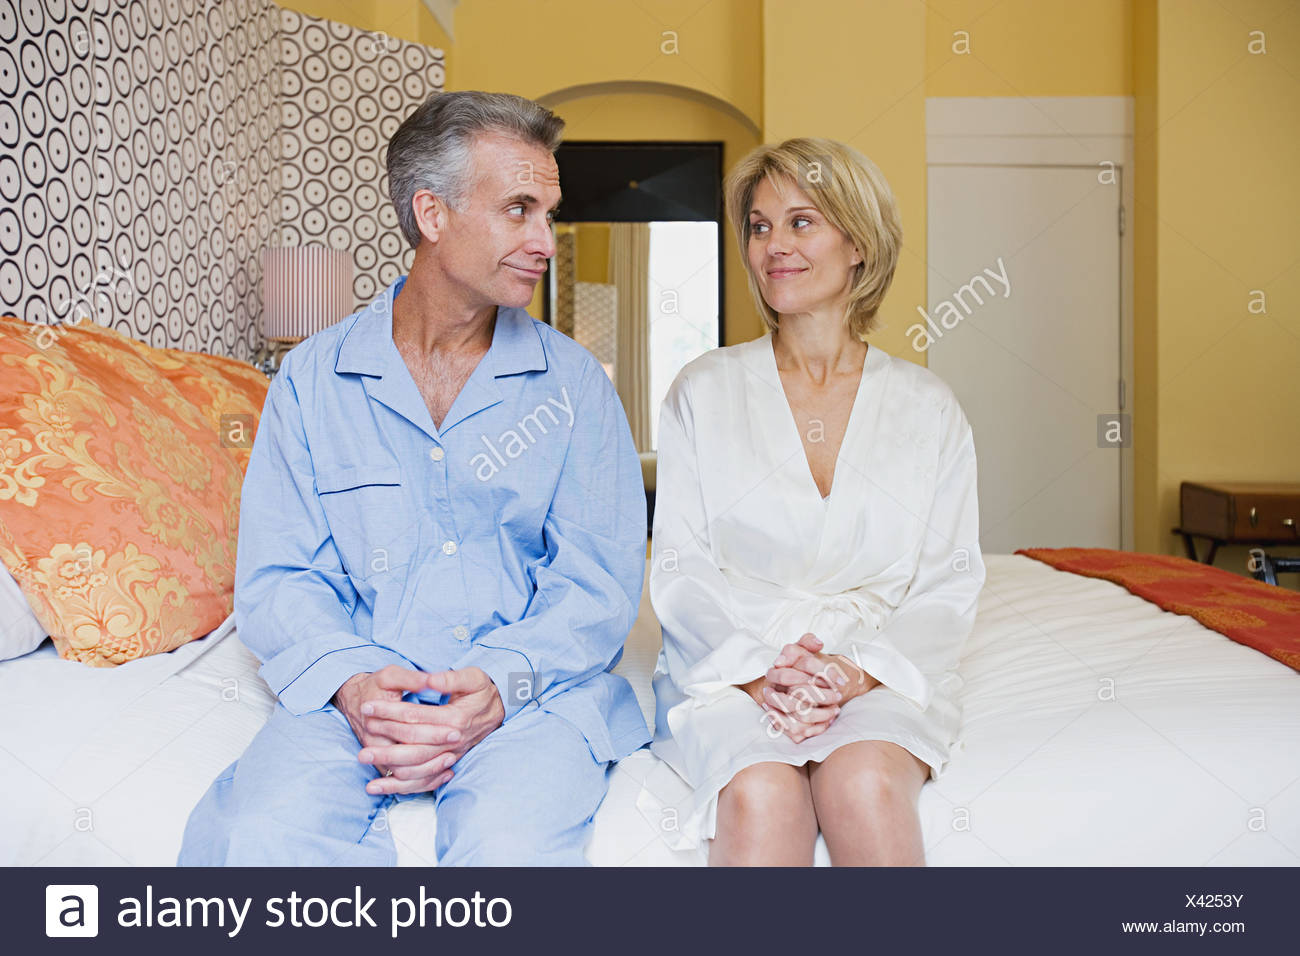 Couple sitting on bed - Stock Image